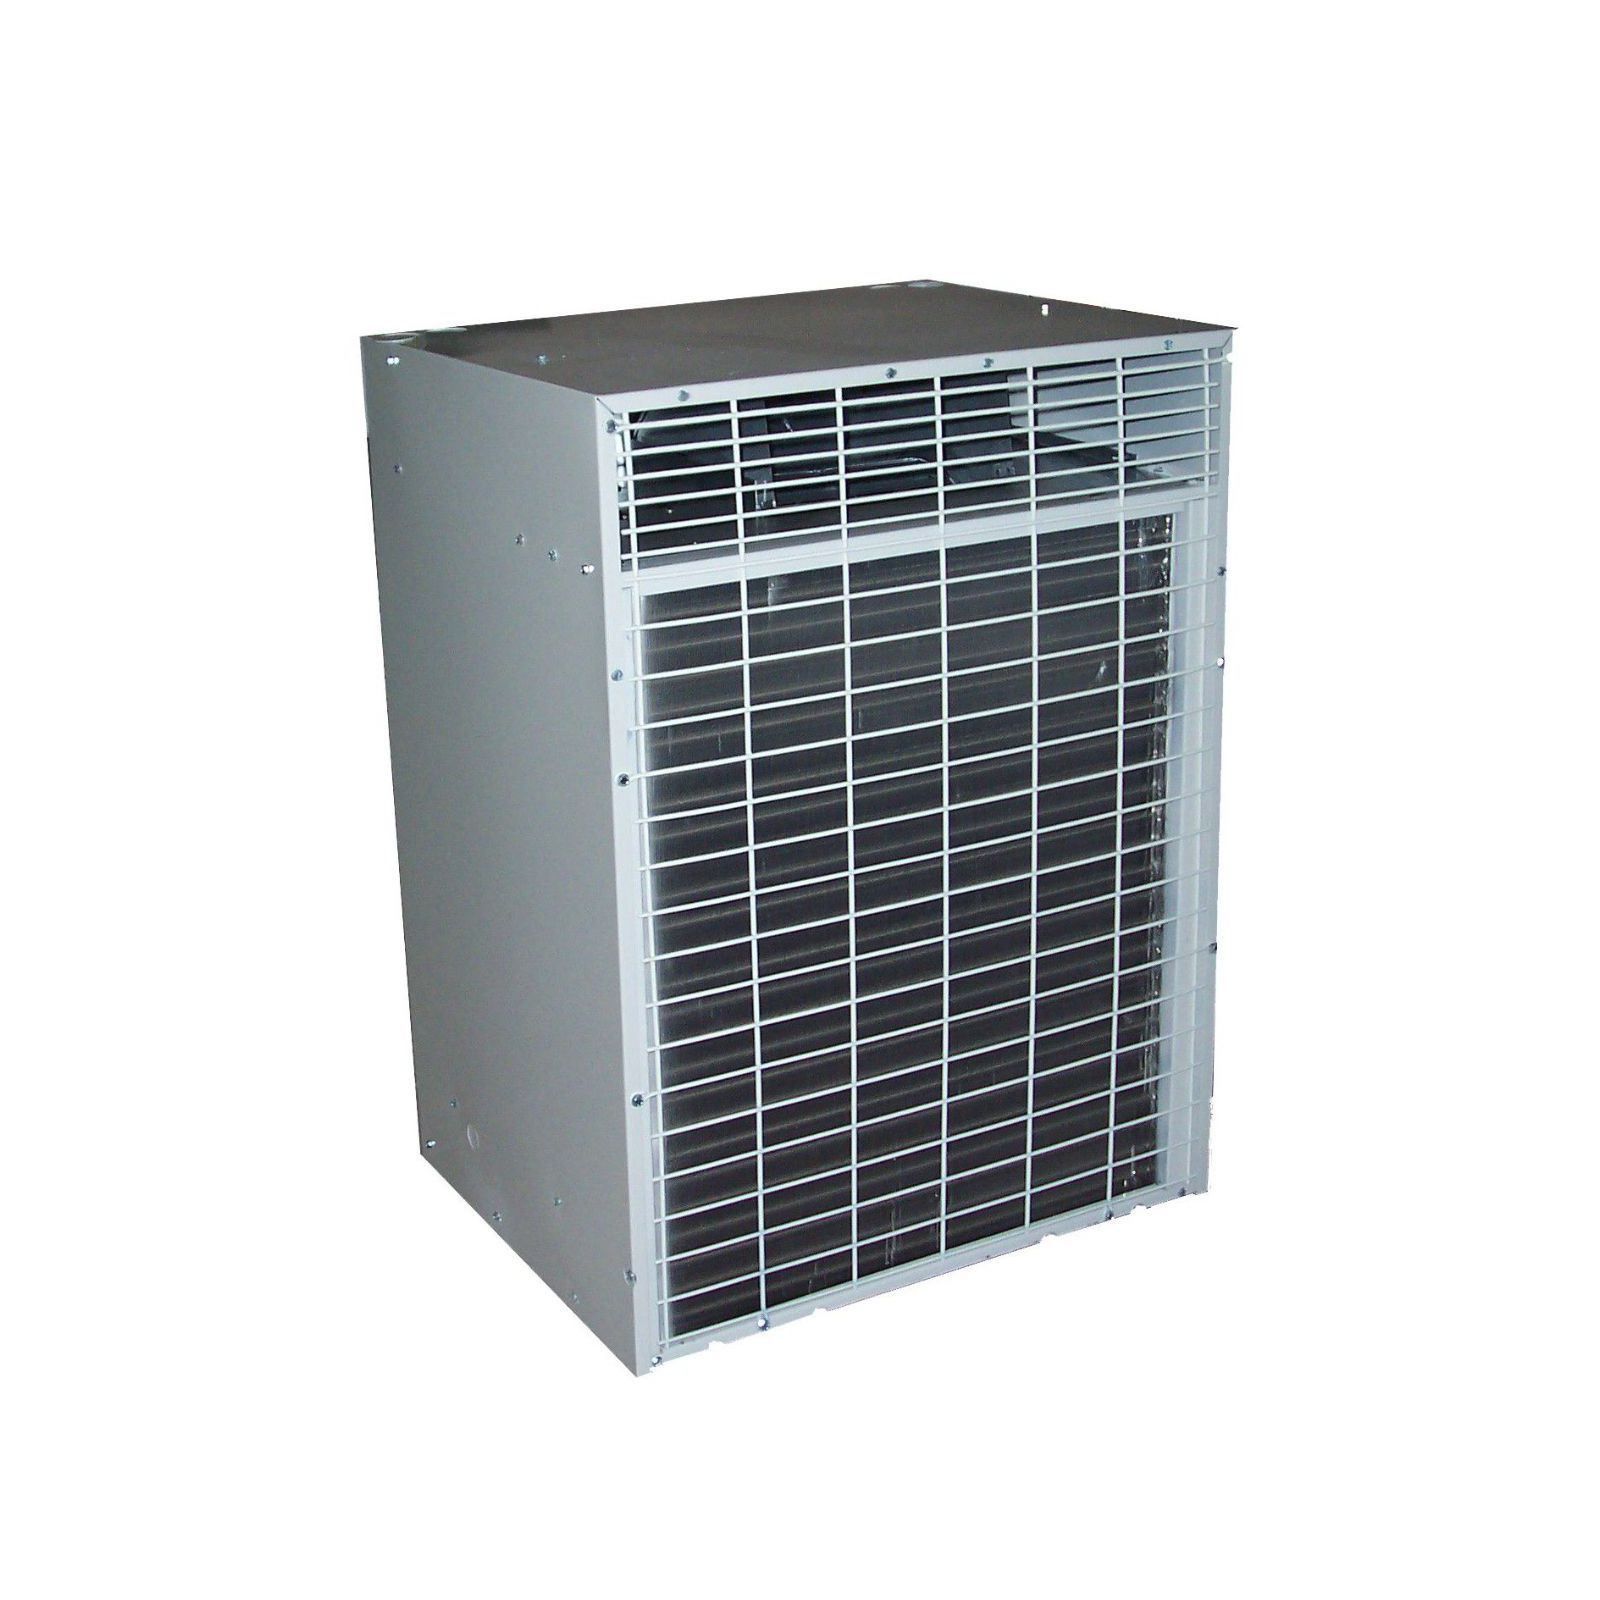 First Co 75GA3012B - FirstCo  - 2 1/2 Ton Replacement Thru-the-Wall Short Condensing Unit, R410A